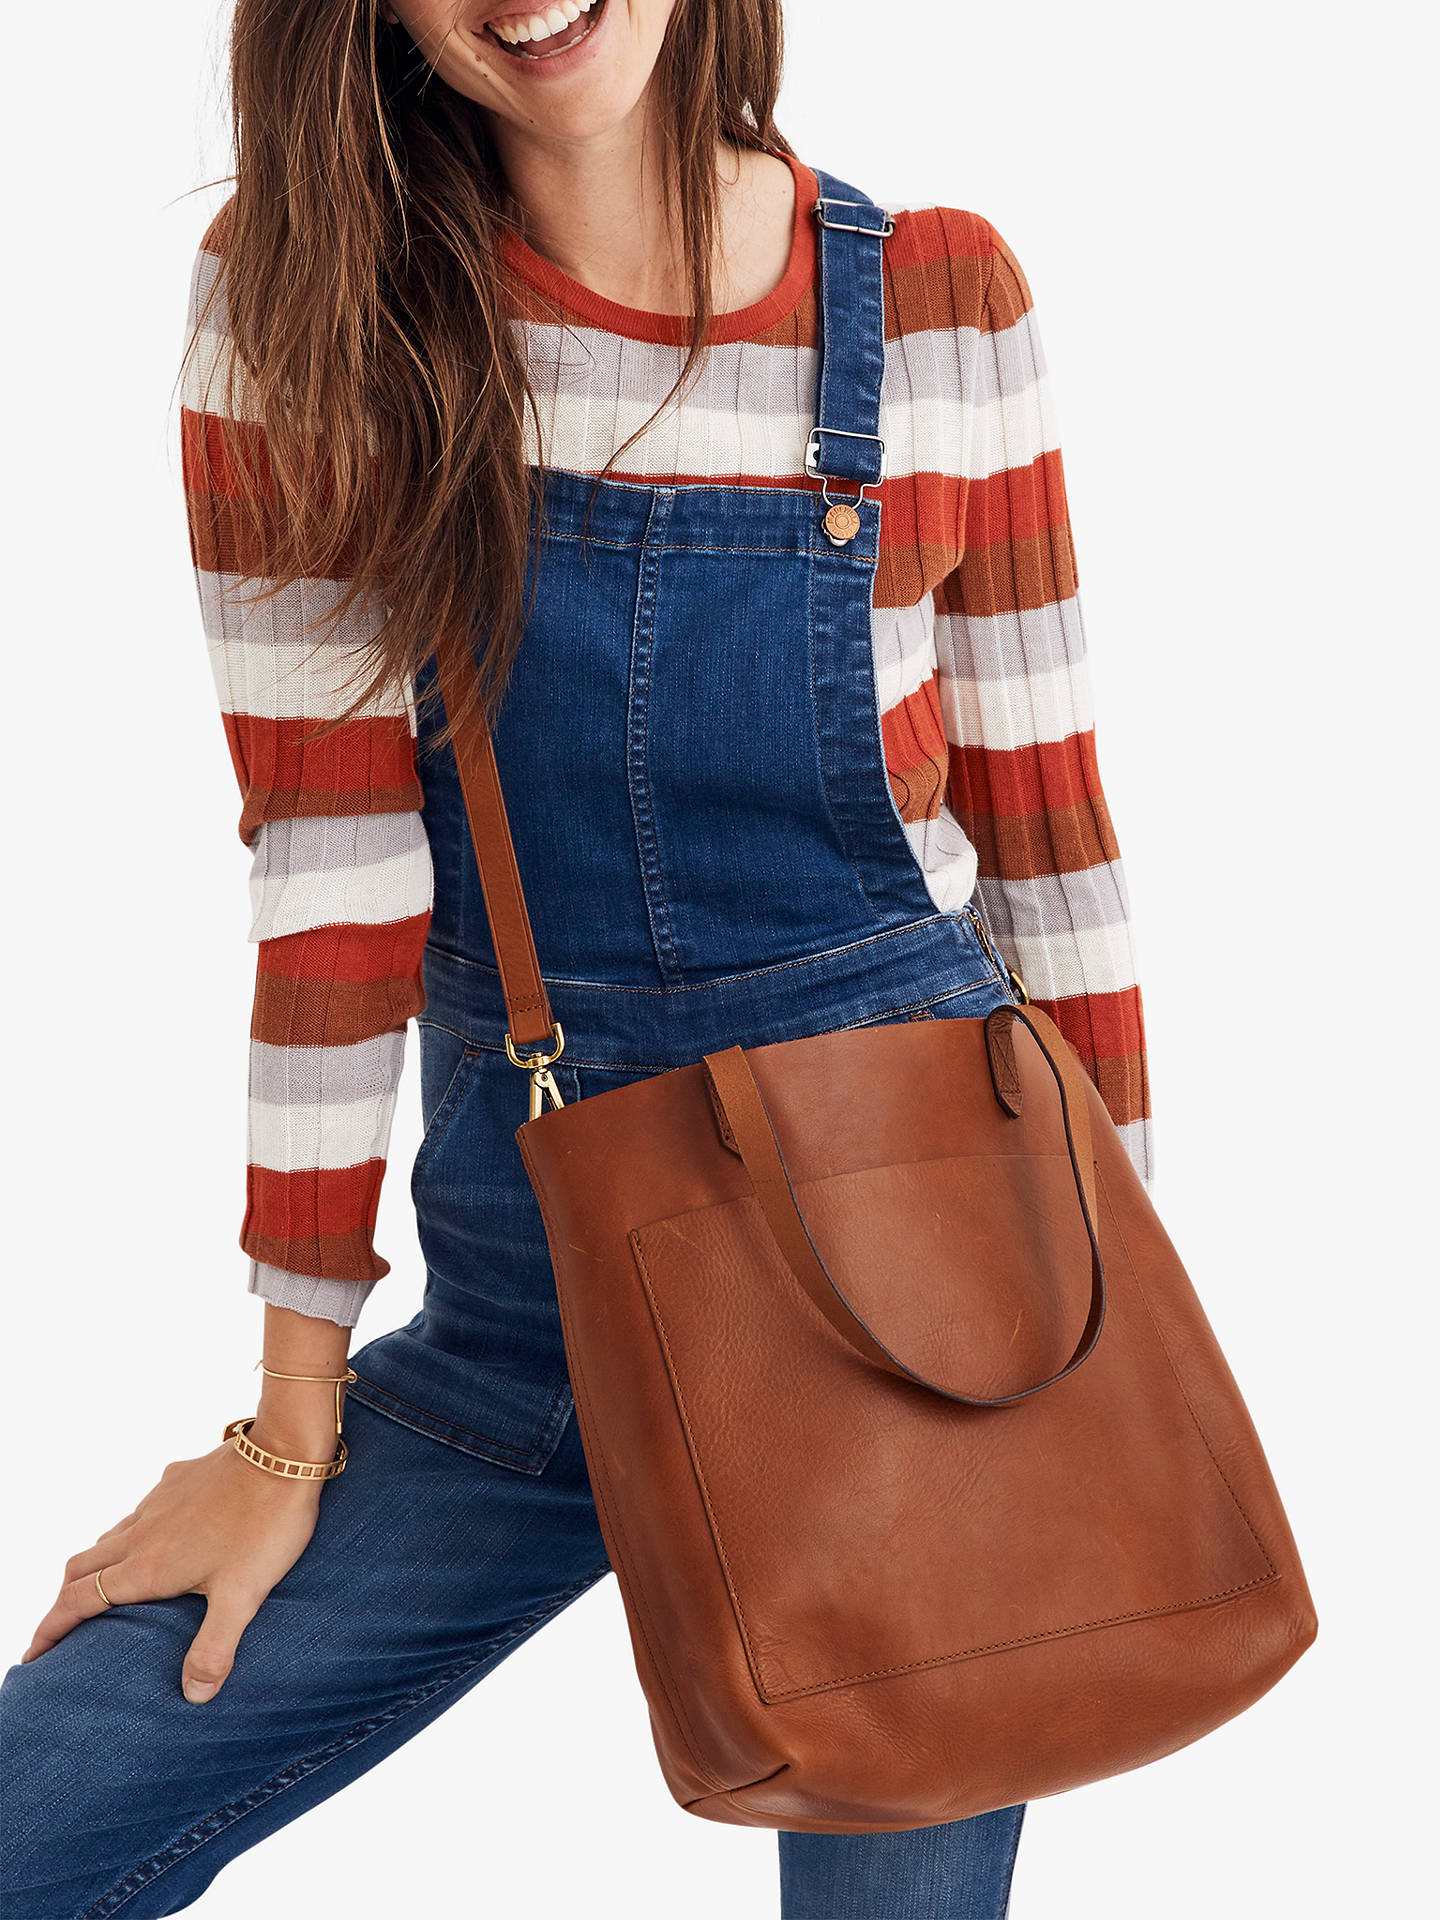 7870fd1a62e8 Madewell Leather Medium Transport Tote Bag at John Lewis   Partners